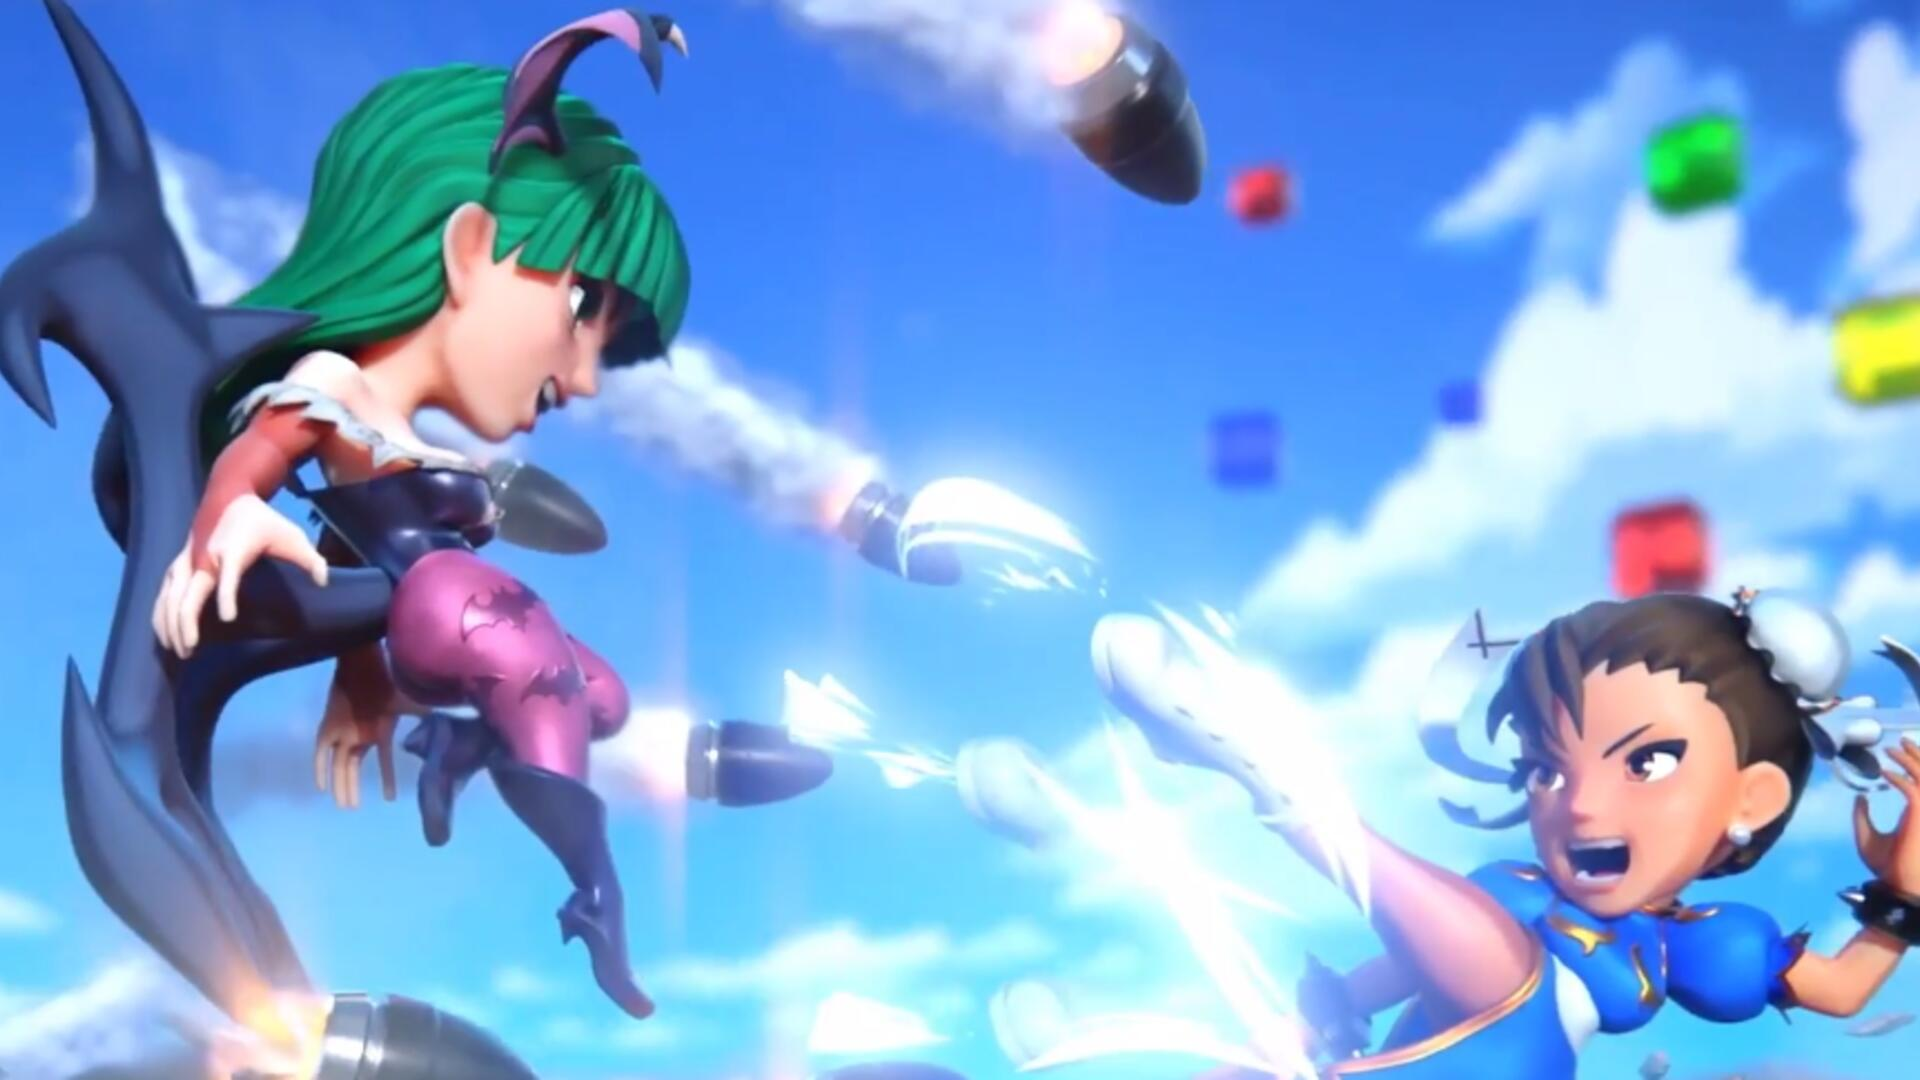 Capcom Vancouver is Bringing Back Puzzle Fighter for Mobile Devices